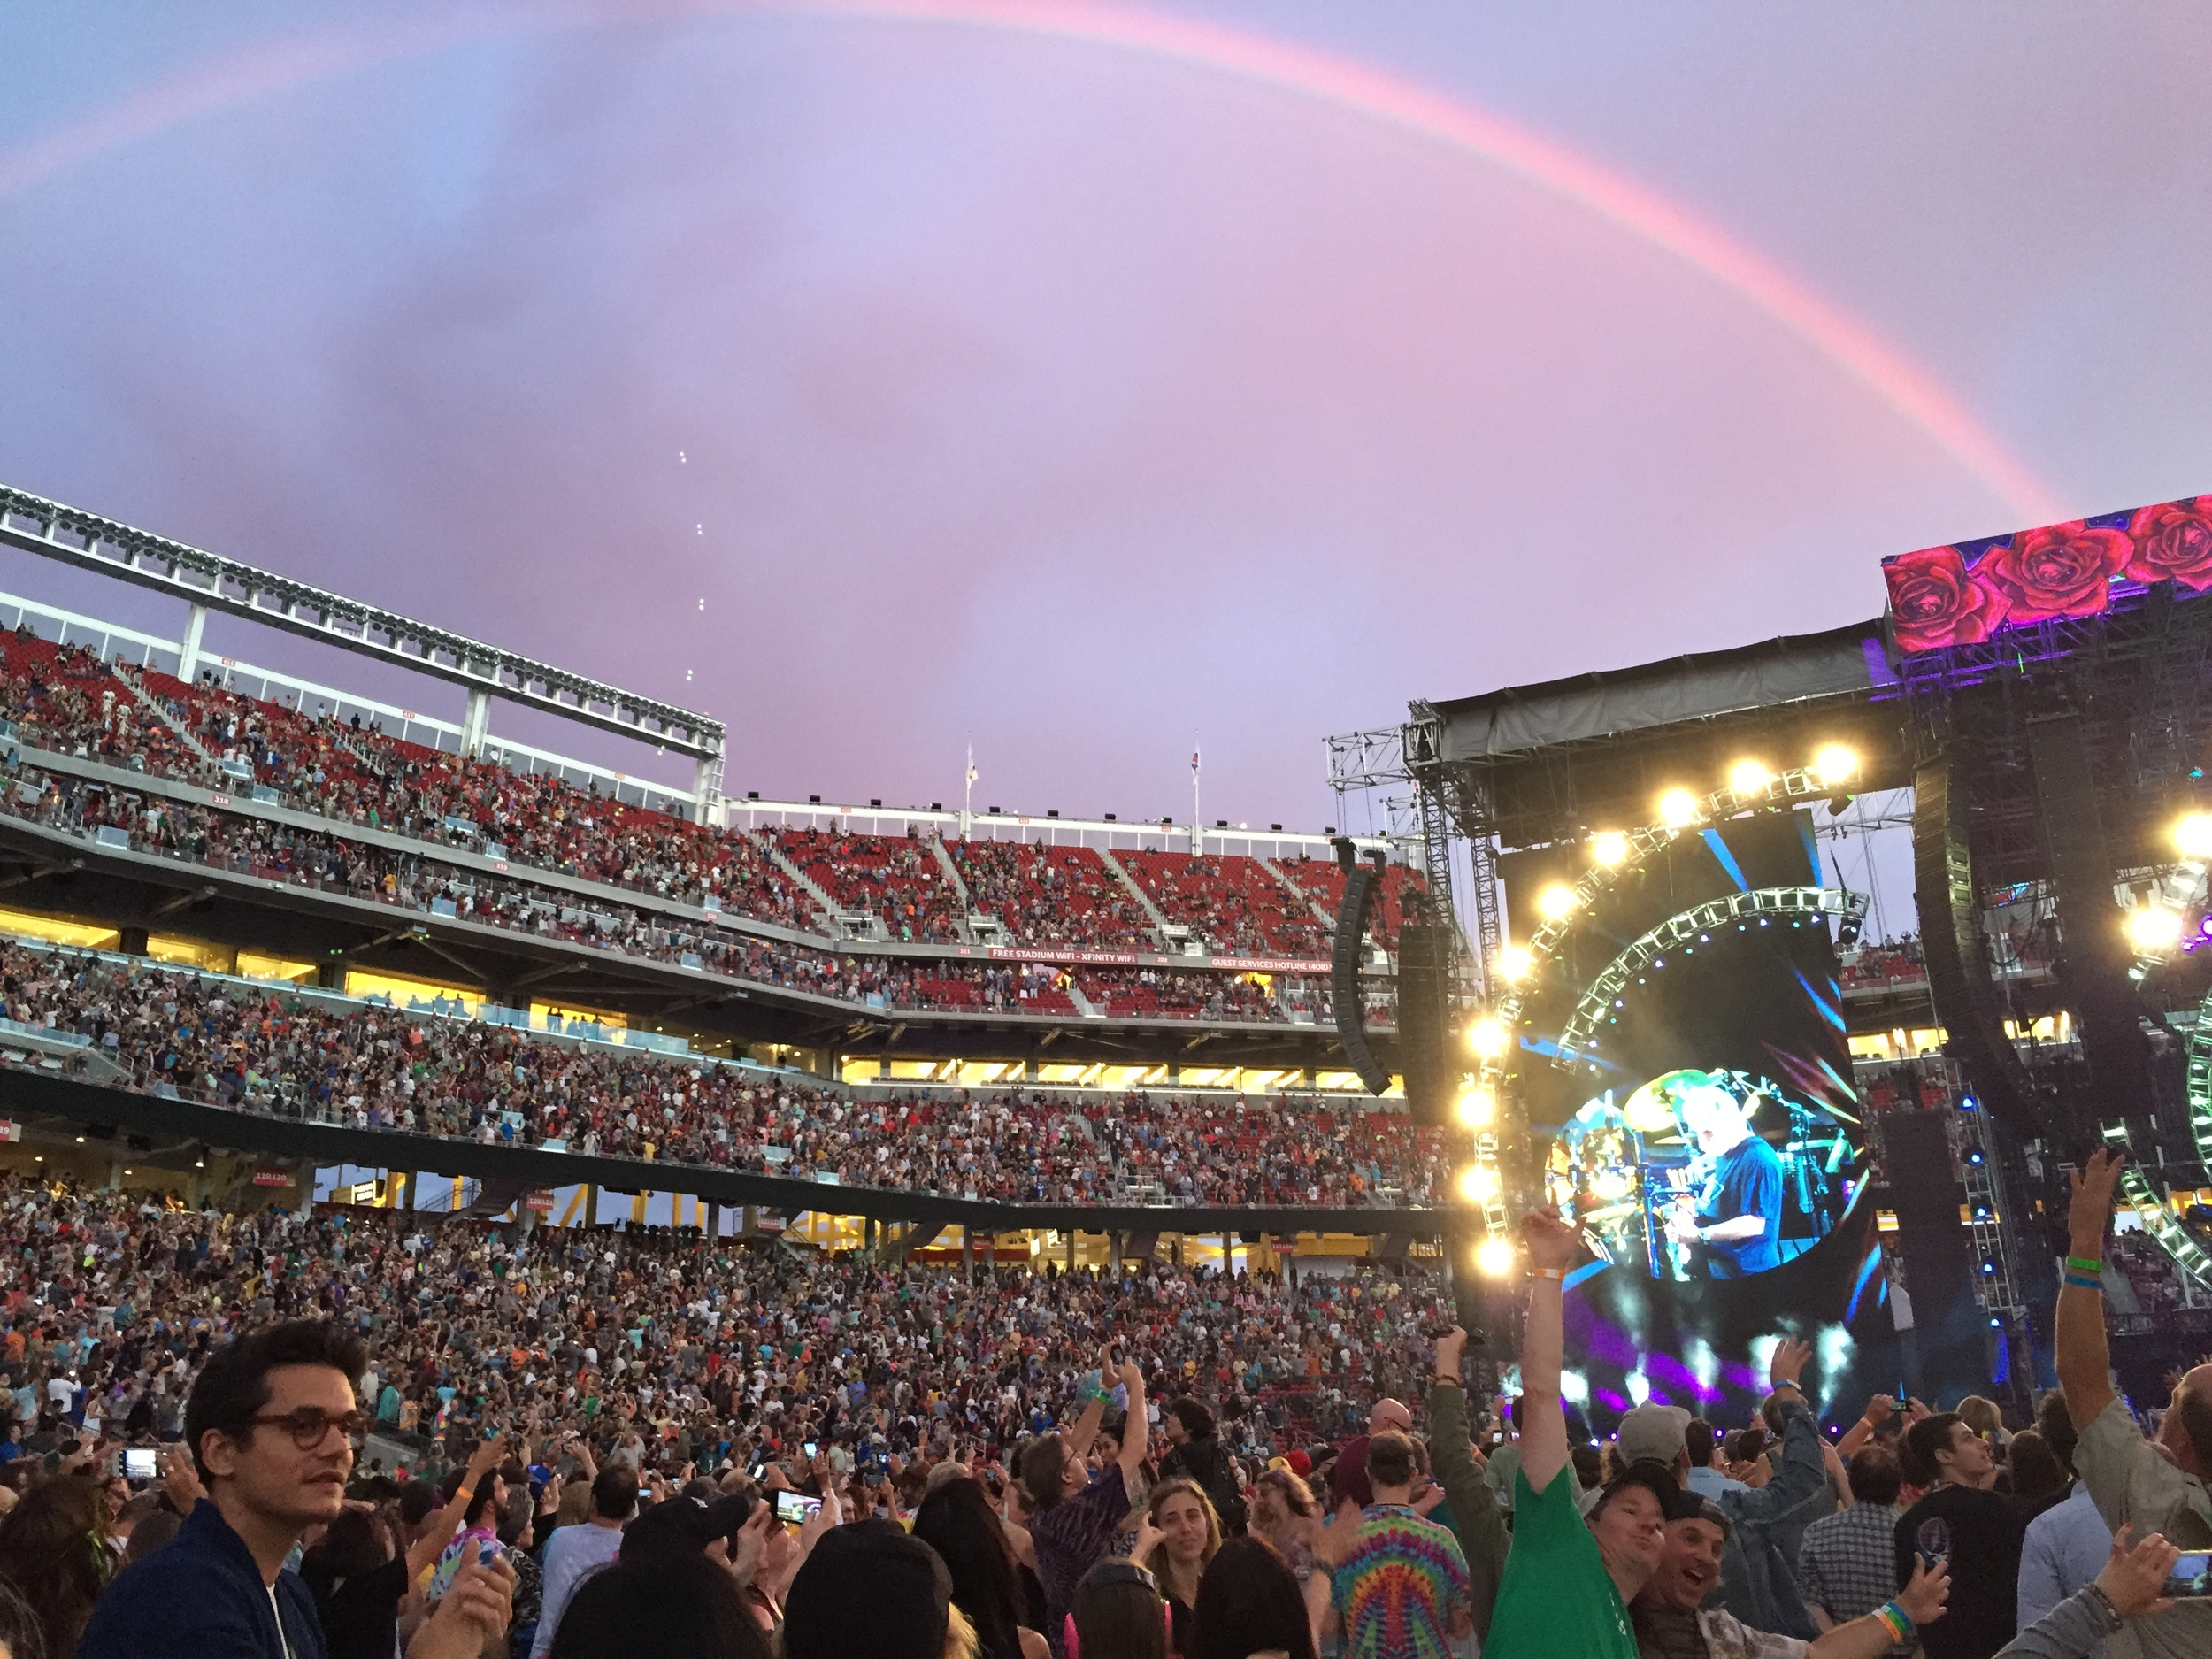 You probably heard about the rainbow that appeared during one of the shows at Levi's stadium. Also... I spy a smiling John Mayer!! My high school heart melts.